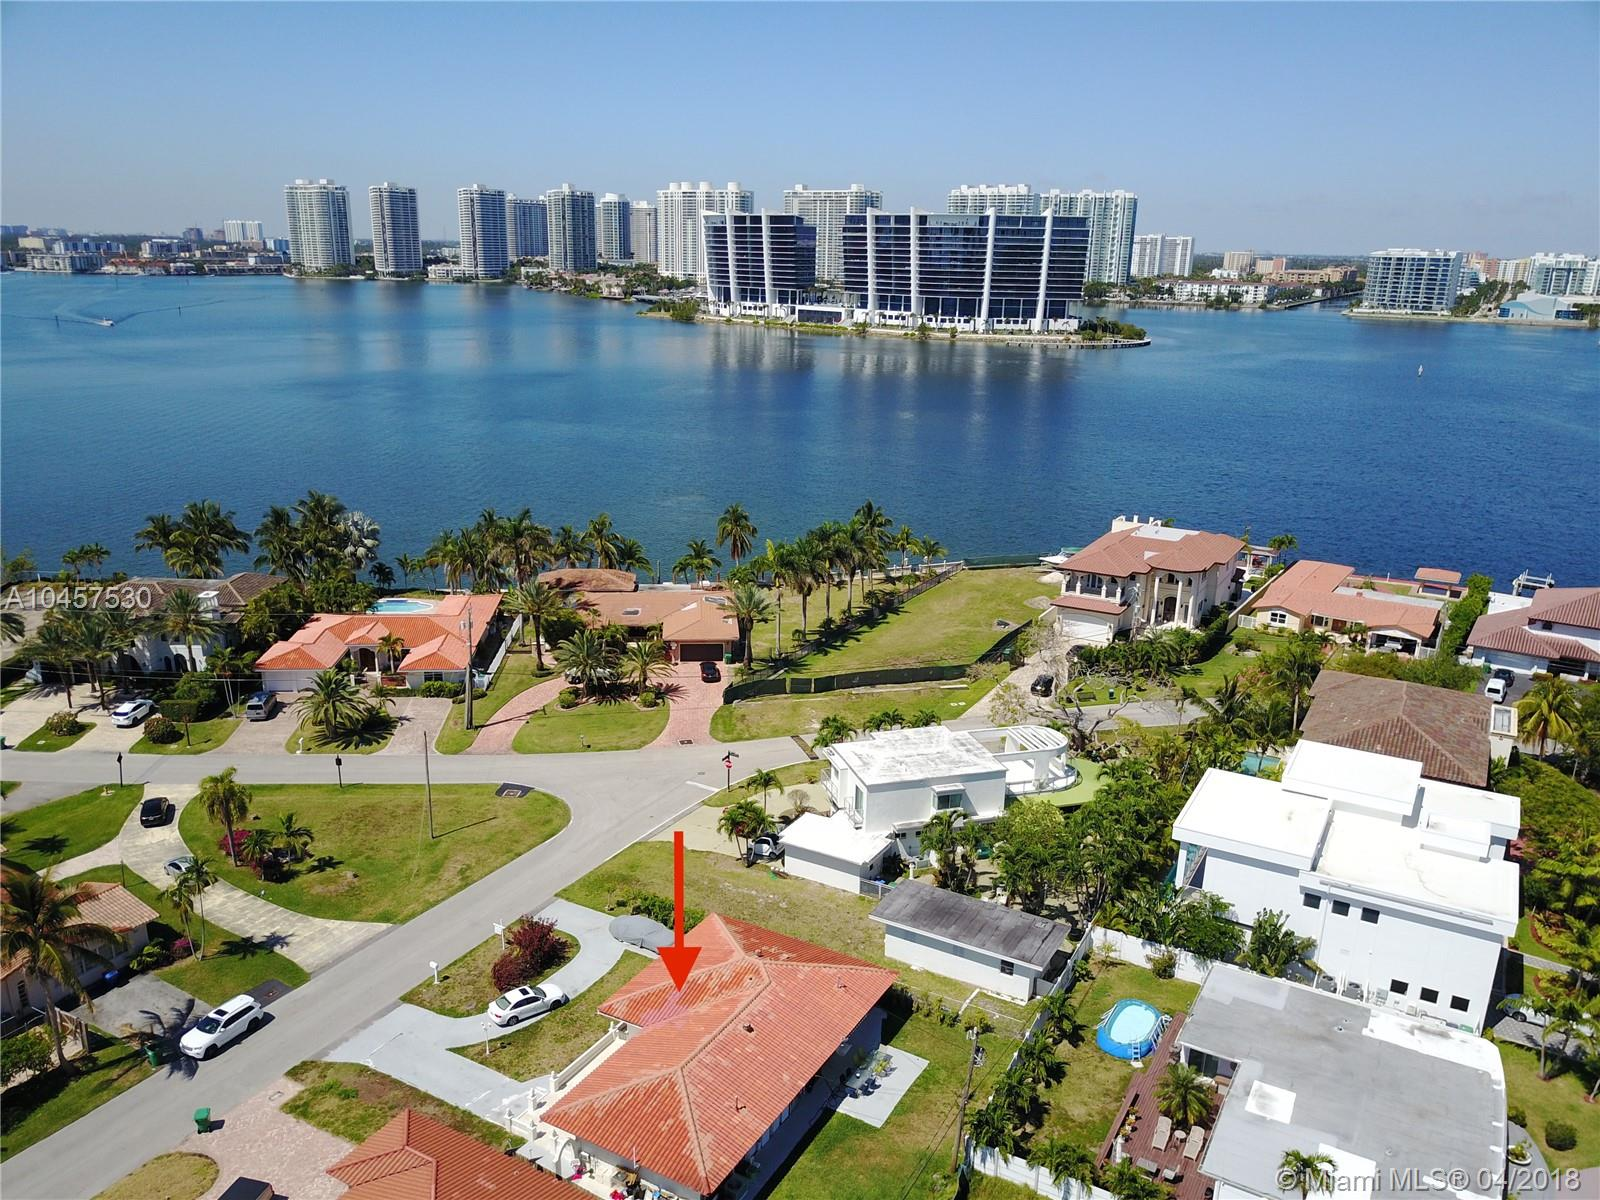 Premier Lot Location Facing The Intracoastal. Spacious Home With Two Efficiencies. Great Income Producing Opportunity. Across The Street From The Ocean. Walking Distance To High-End Restaurants And Shops. Minutes From Fort Lauderdale Airport, South Beach, Houses Of Worship, And Aventura Mall. A+ Rated Schools.